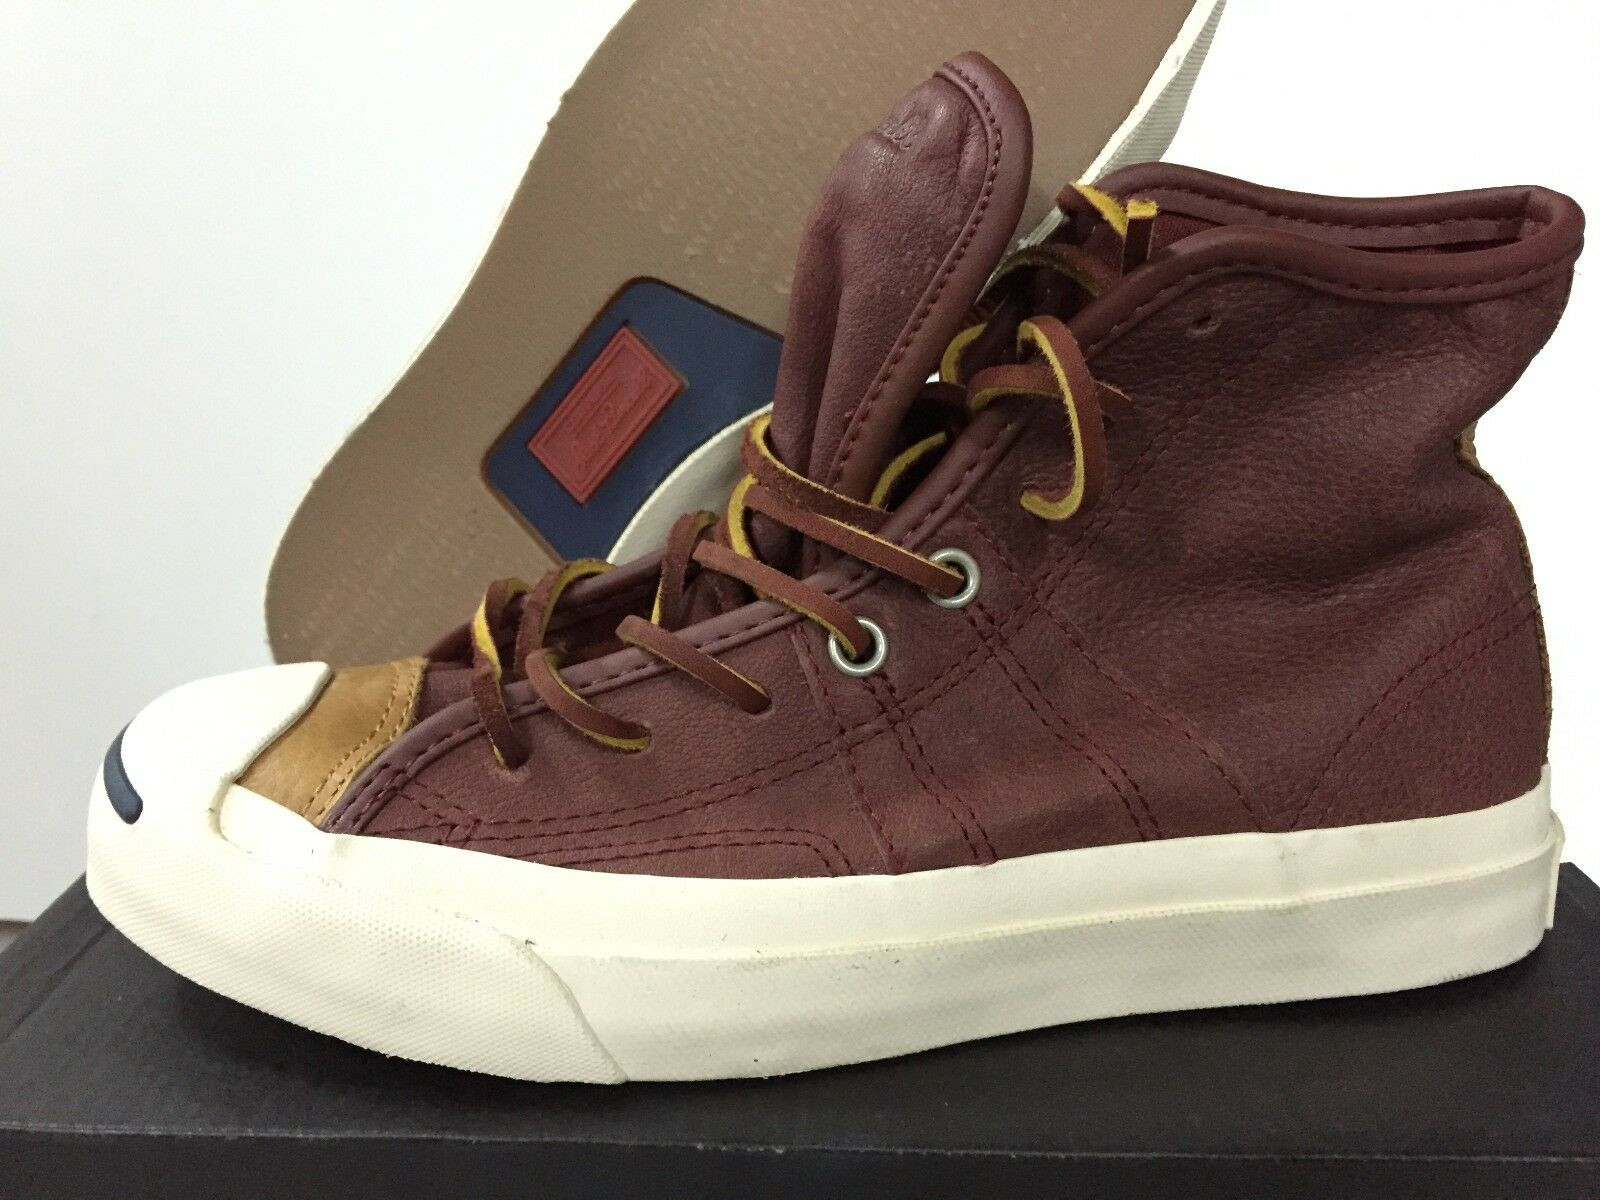 New Converse Jack Purcell Johnny Andorra Brown Uomo shoes  4.5 140860C